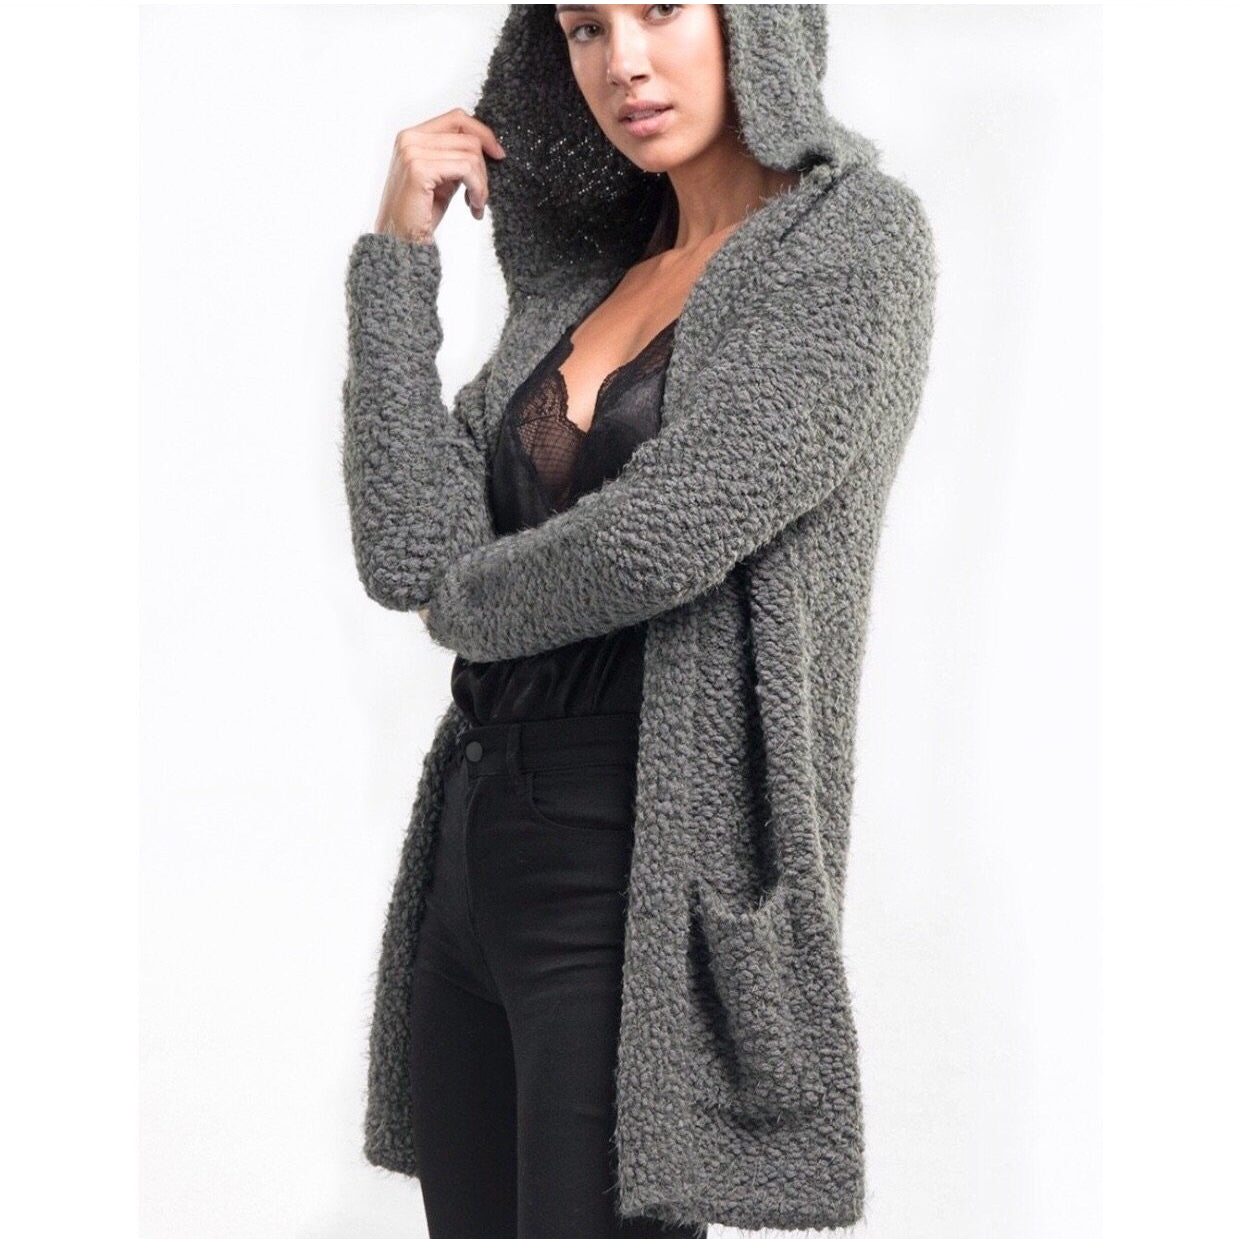 SALE ! Amelia Luxe Cardigan in Olive by Lovestitch - Glamco Boutique